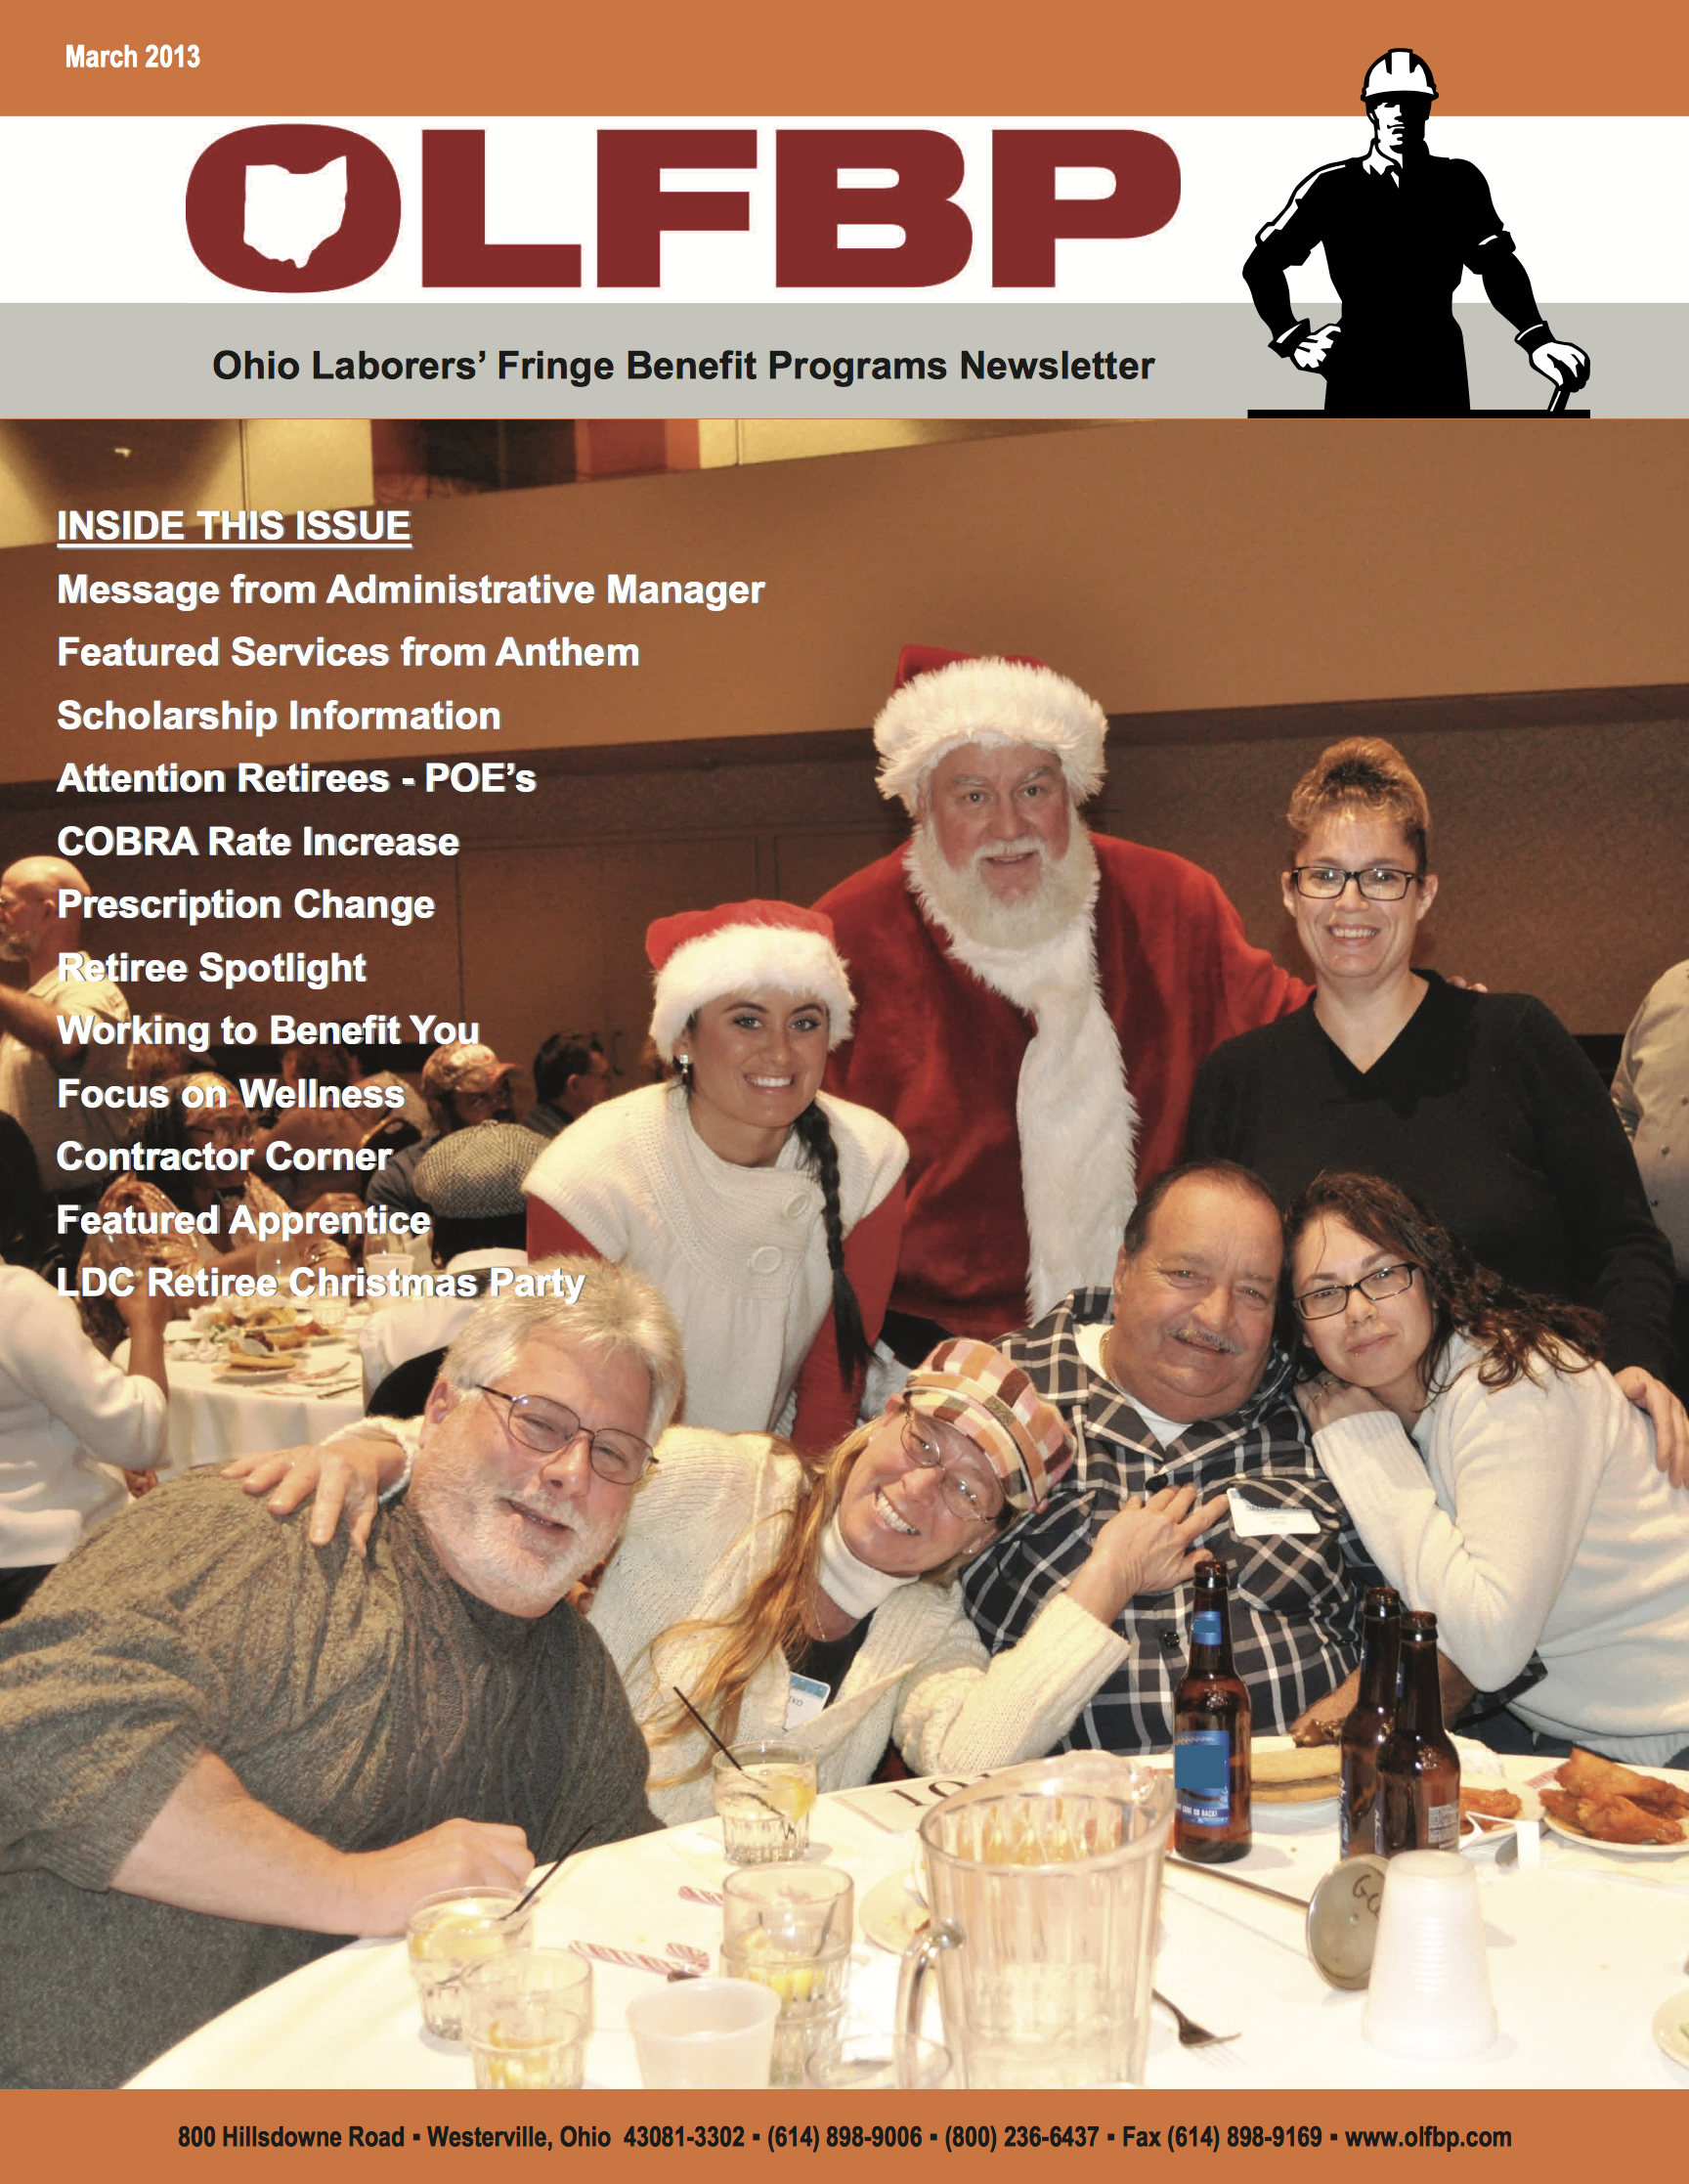 March 2013 Newsletter cover